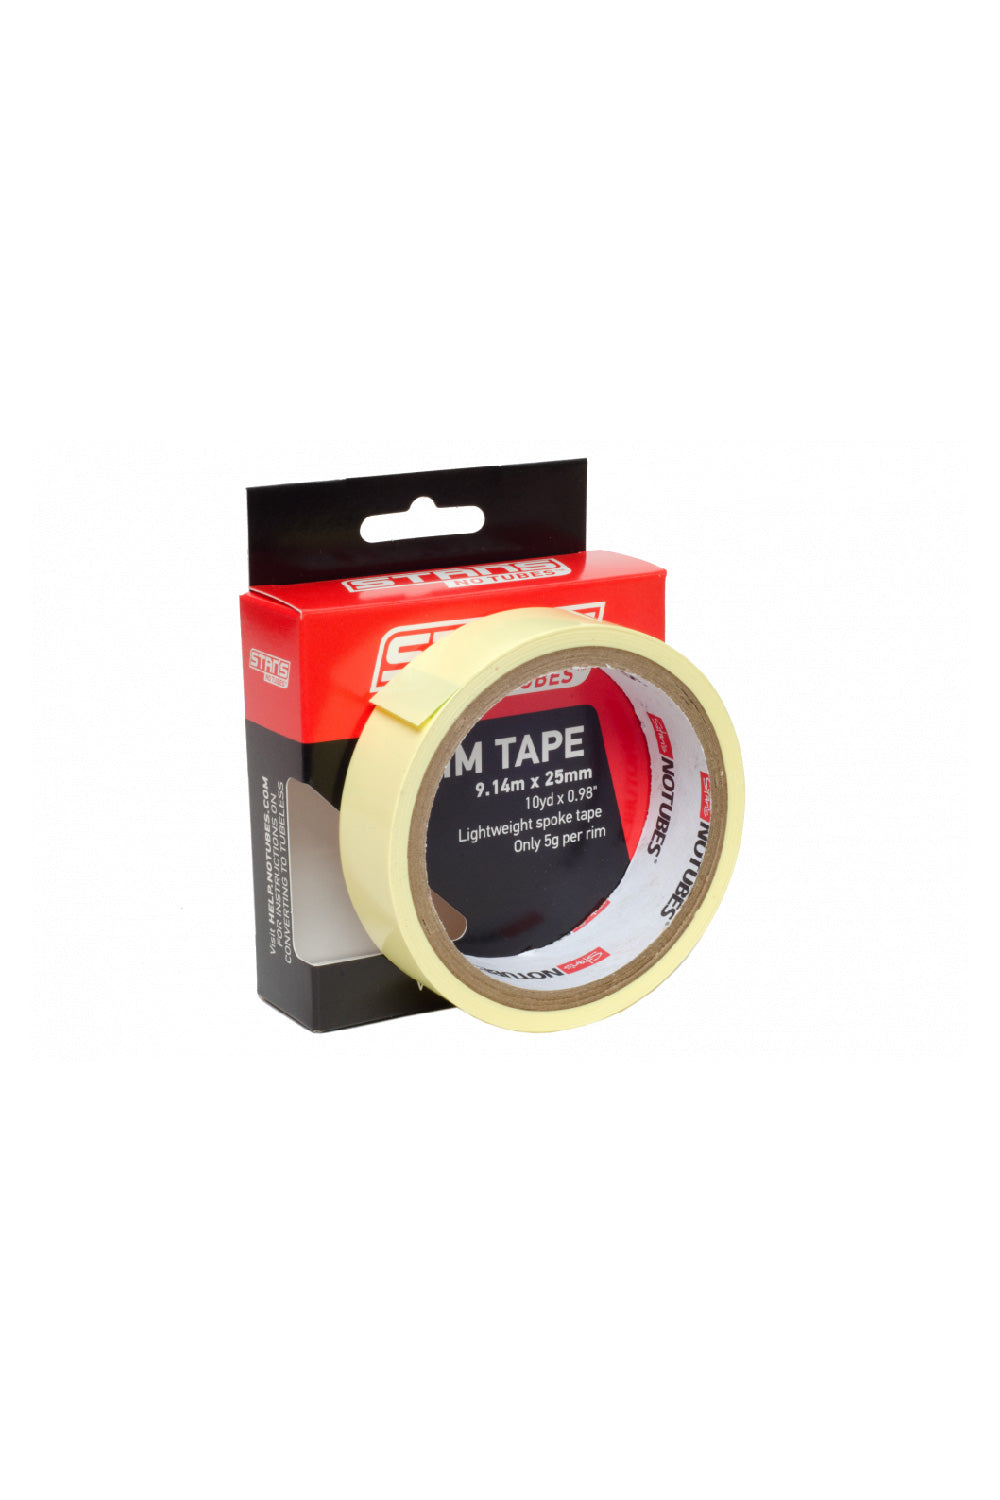 Stans Rim Tape 10yard X 27mm